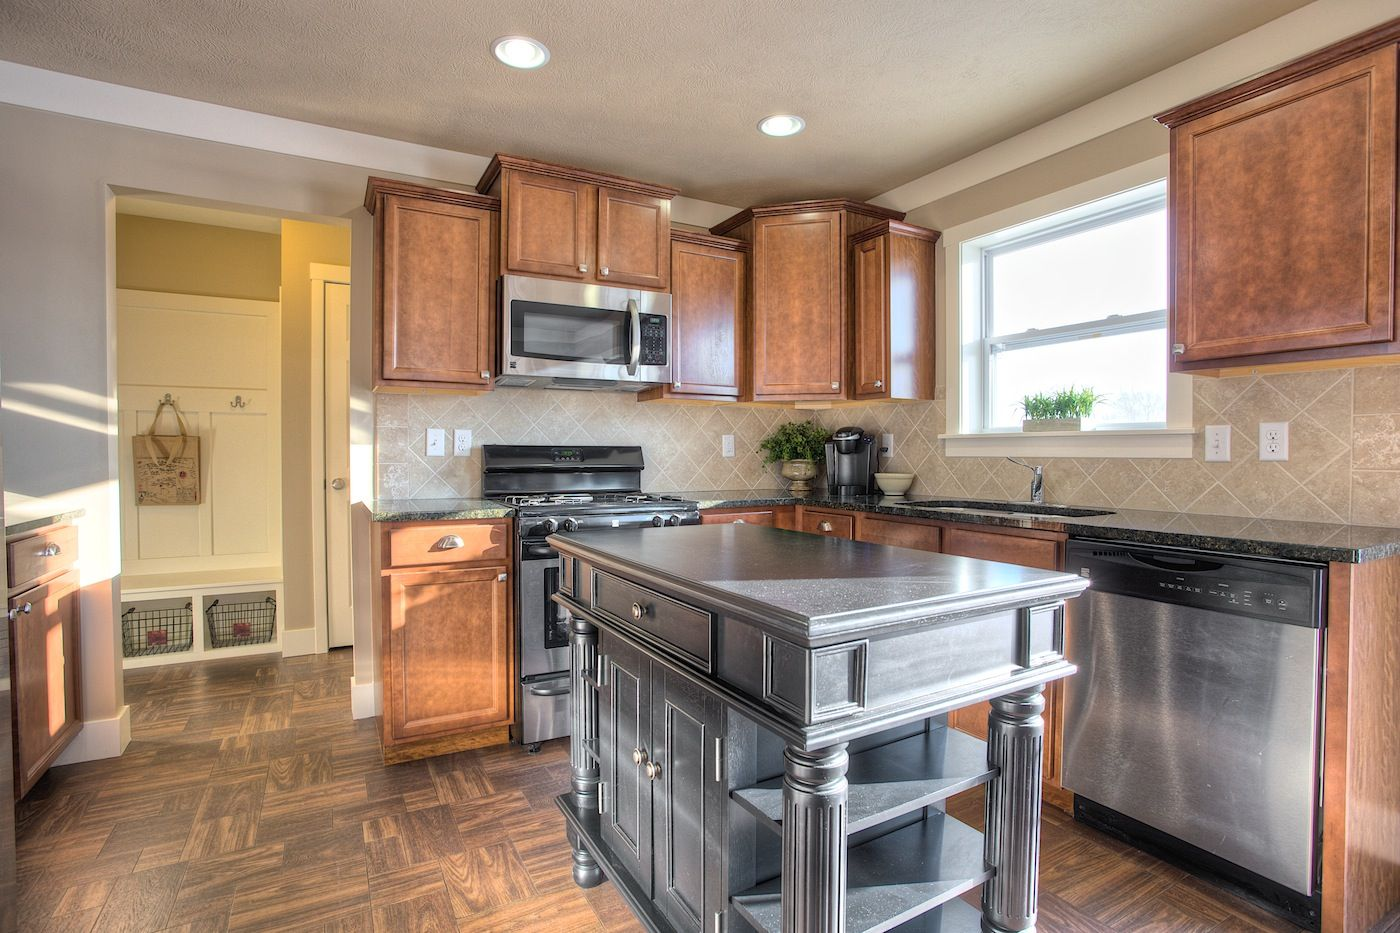 Kitchen featured in the Elements 1870 By Allen Edwin Homes in South Bend, IN